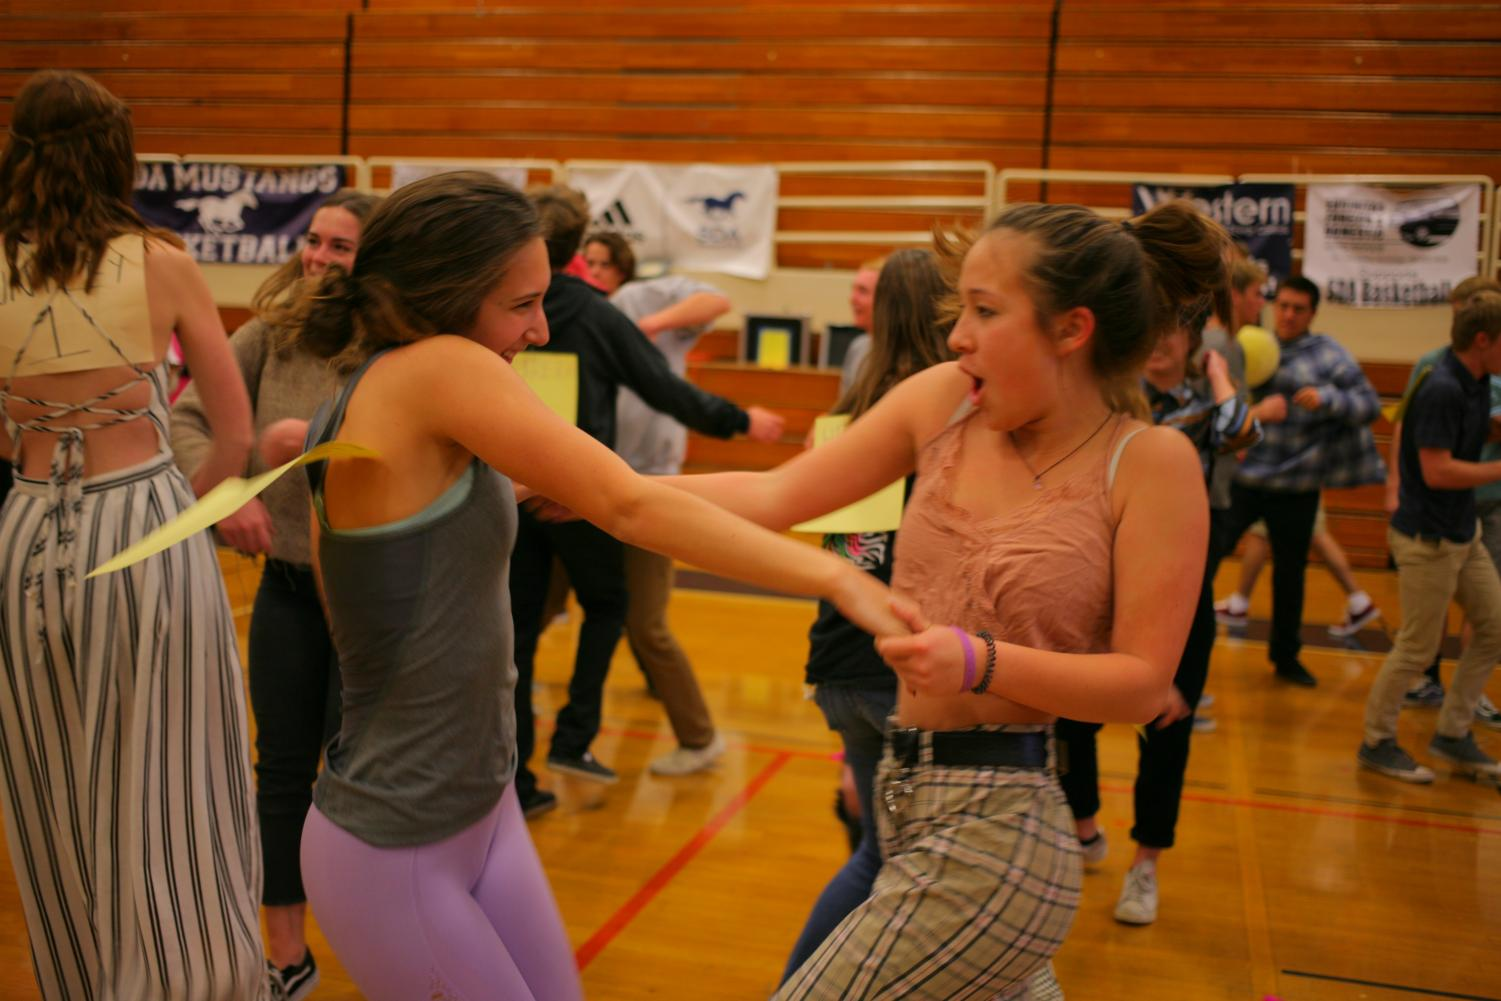 Juniors Adriana Billante and Kiomi Yamada jam to the music during last week's homeroom dance party.